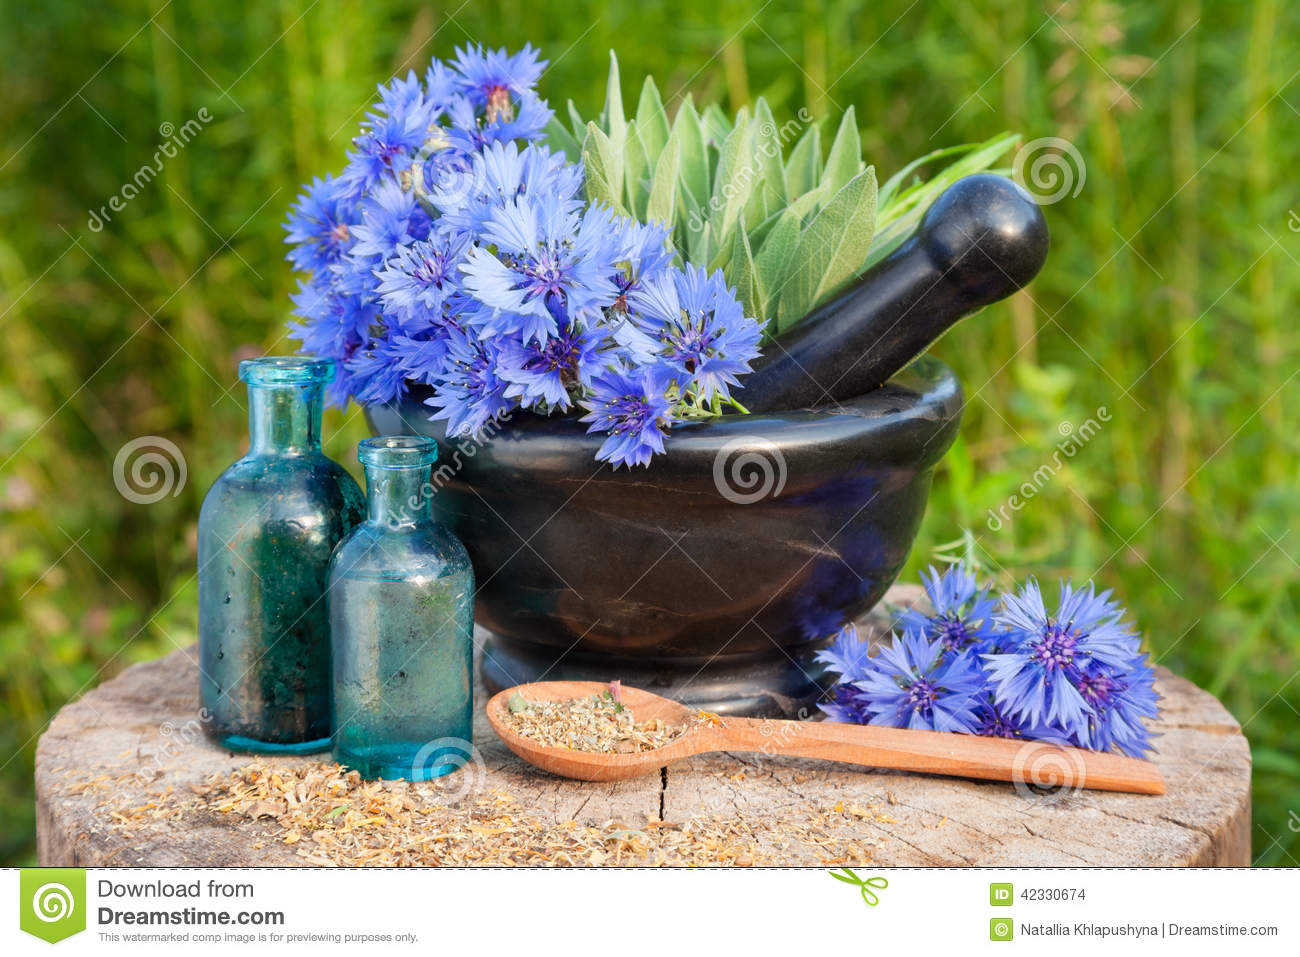 Mortar with blue cornflowers and sage, vials with essential oil